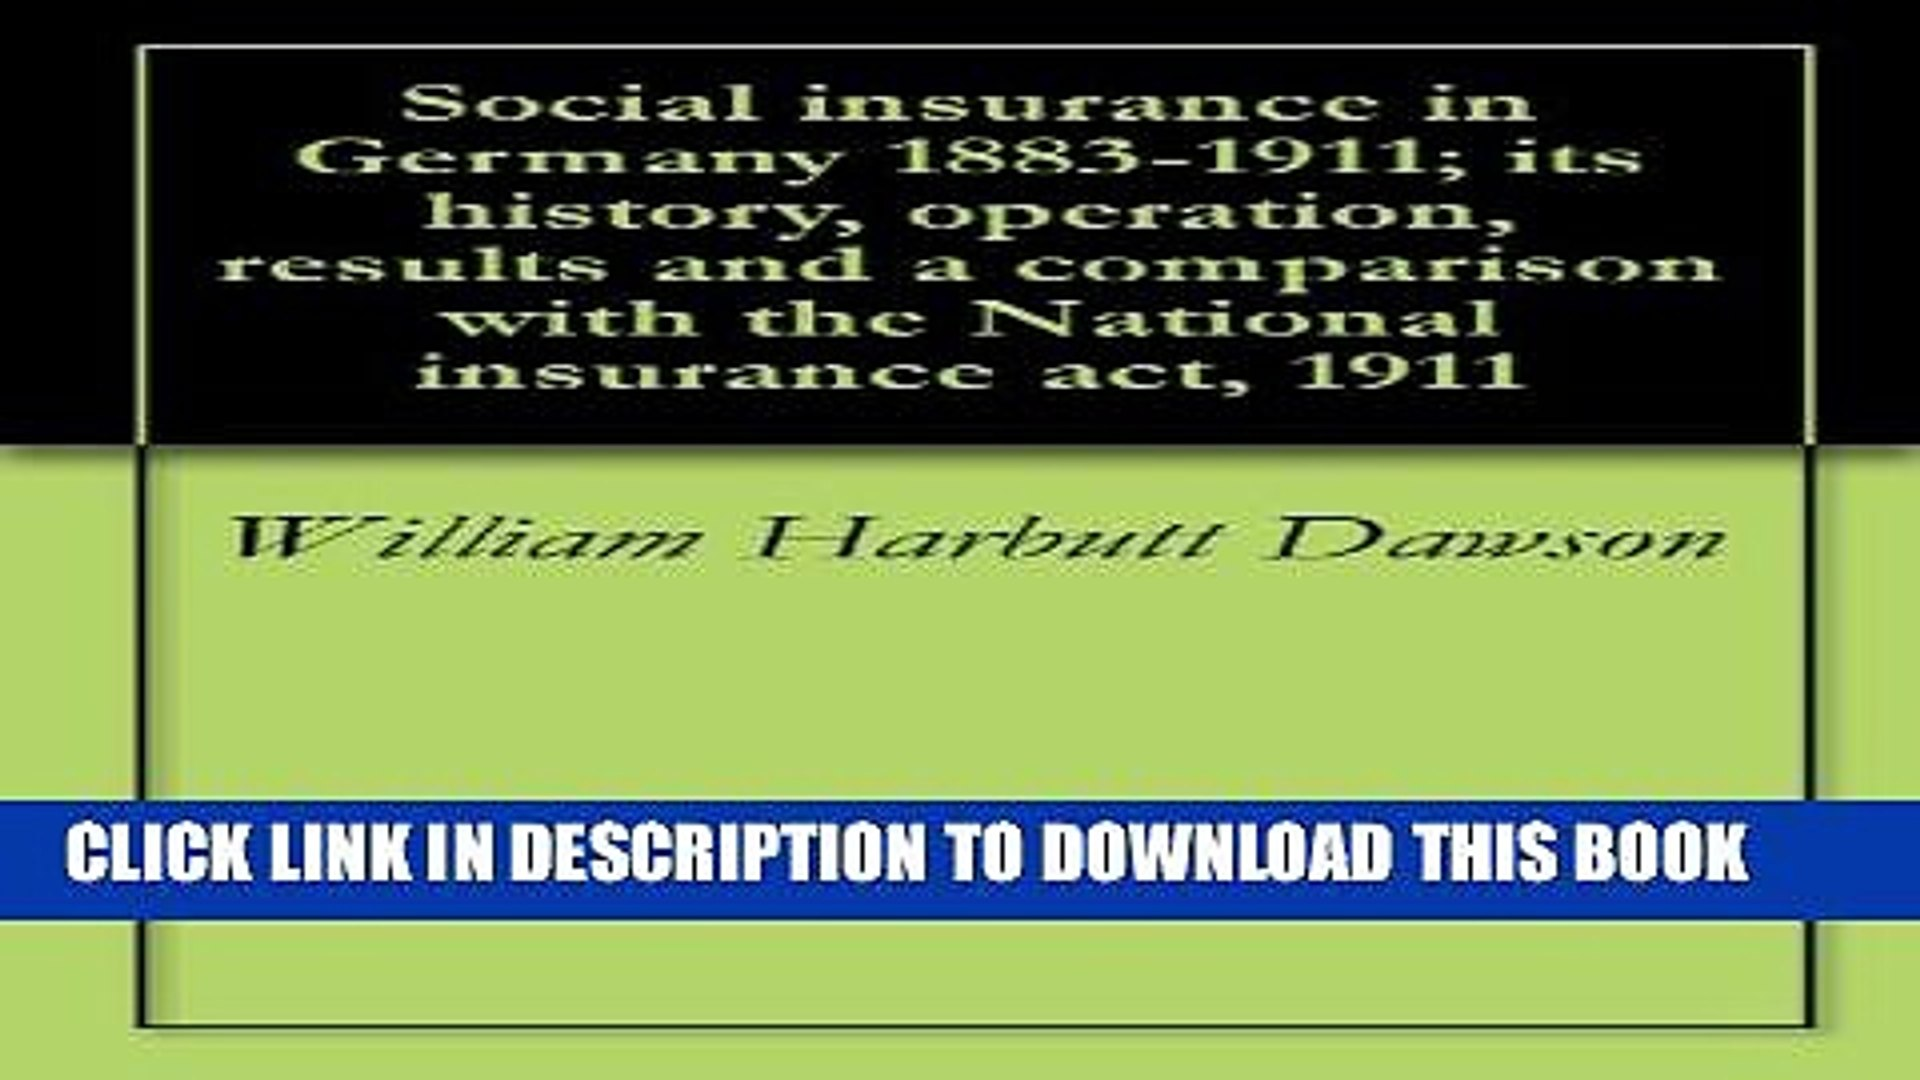 [PDF] Social insurance in Germany 1883-1911; its history, operation, results and a comparison with